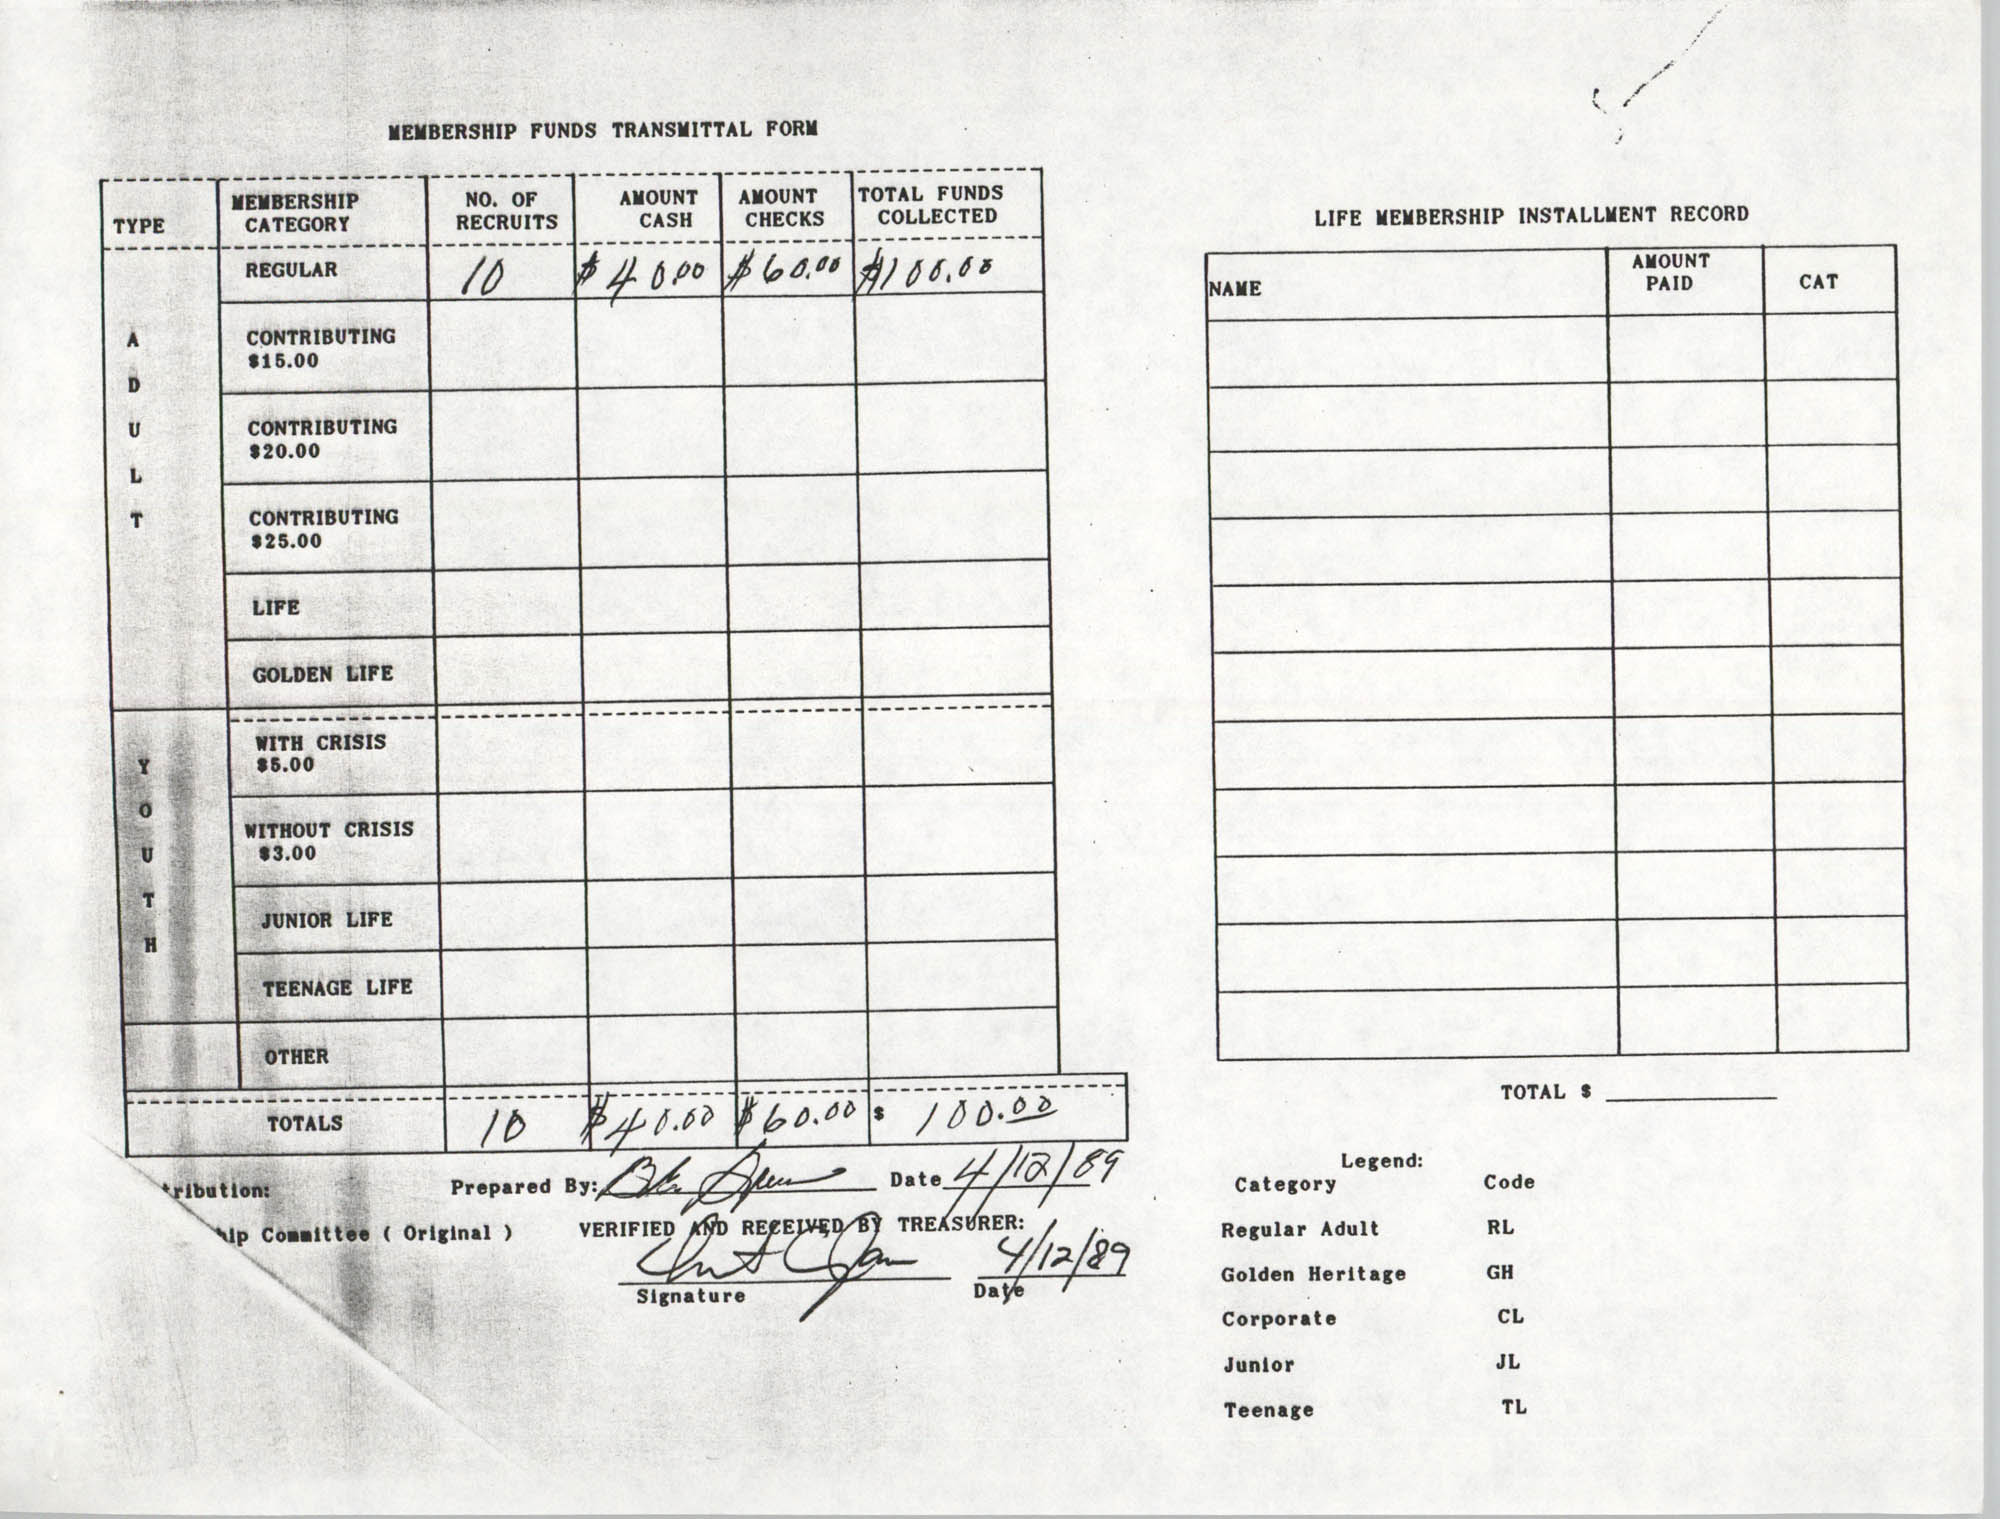 Charleston Branch of the NAACP Funds Transmittal Forms, April 1989, Page 3